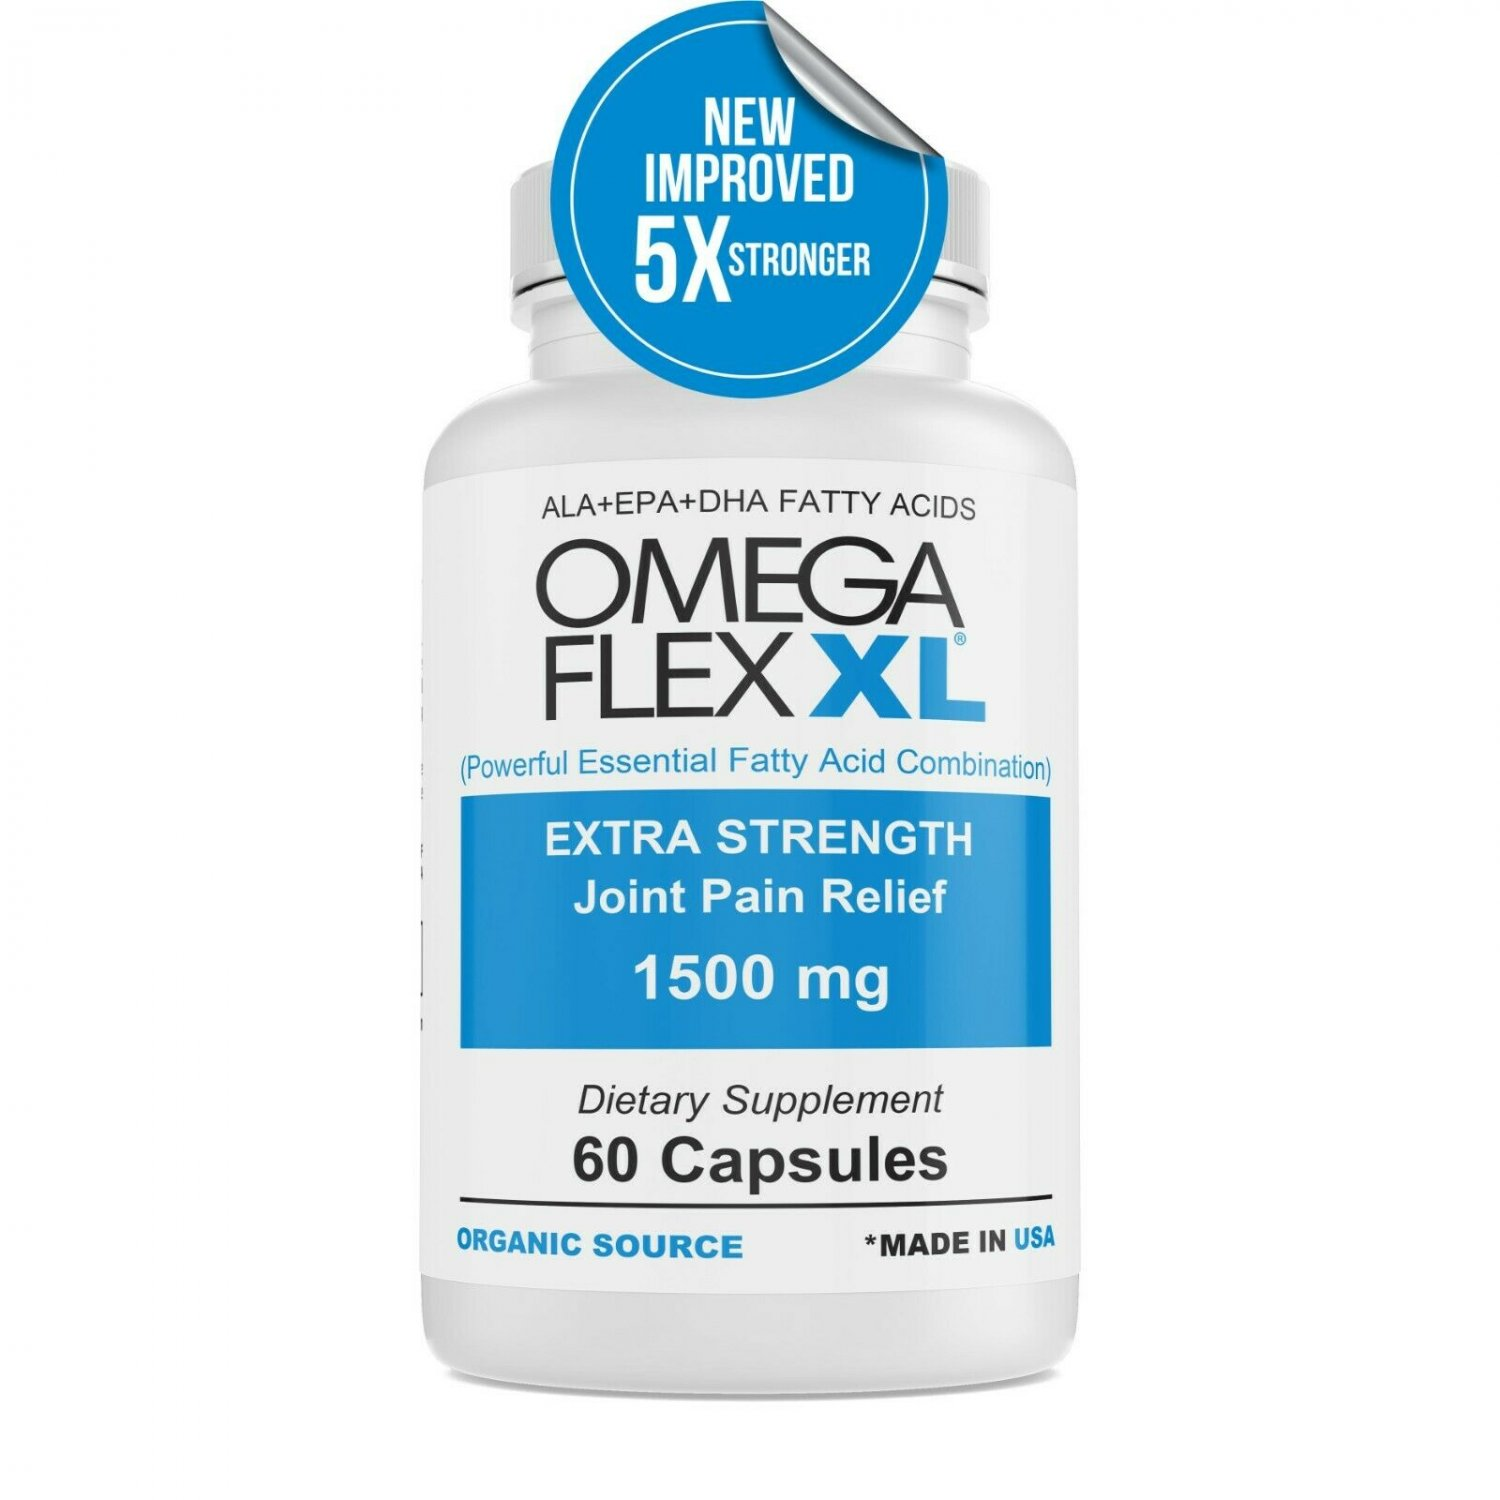 Omega Flex XL NEW IMPROVED Extra Strength Potent Joint Pain Relief 60 ct